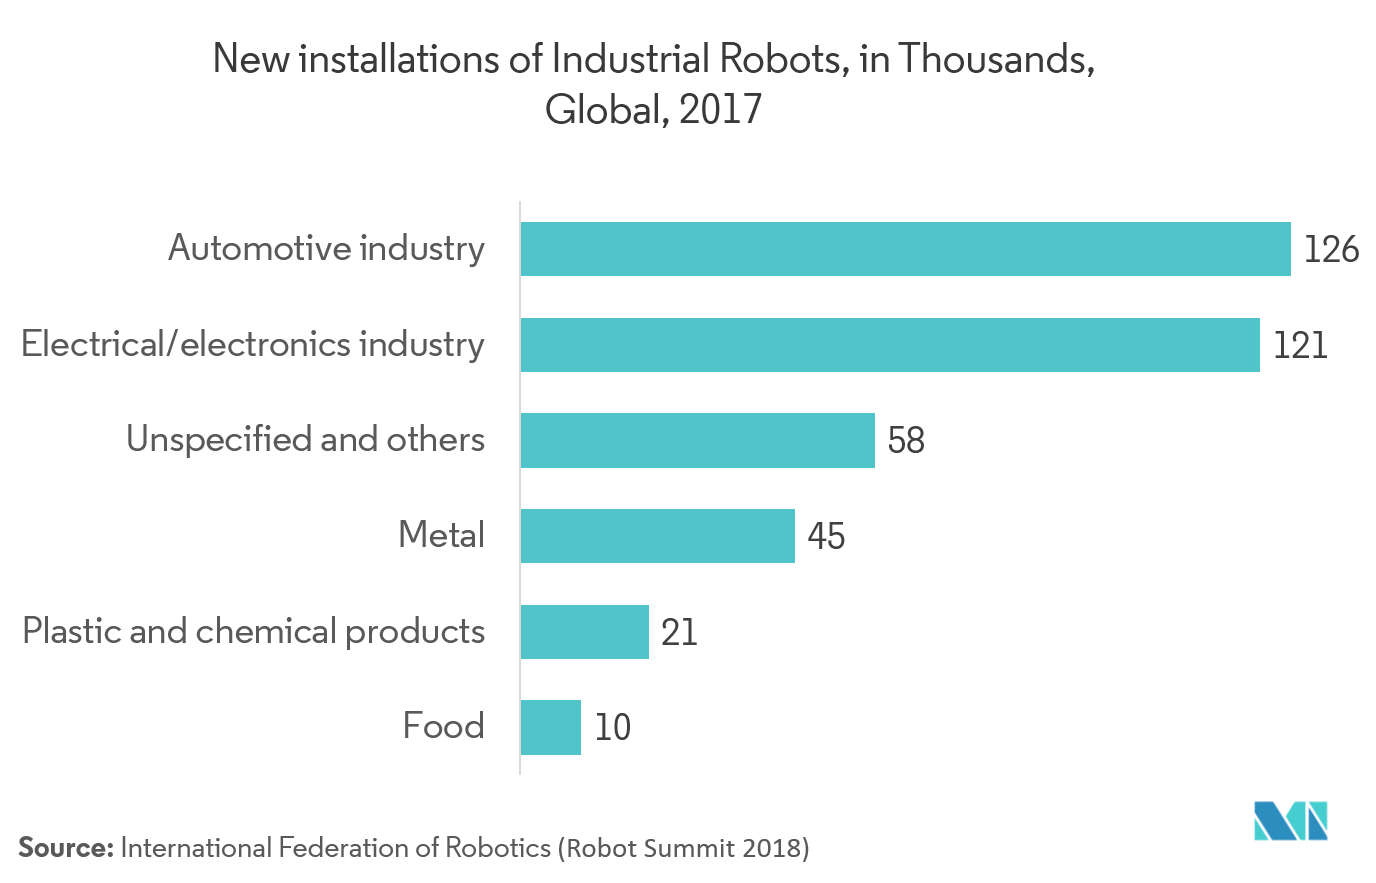 New Installations of Industrial Robotics